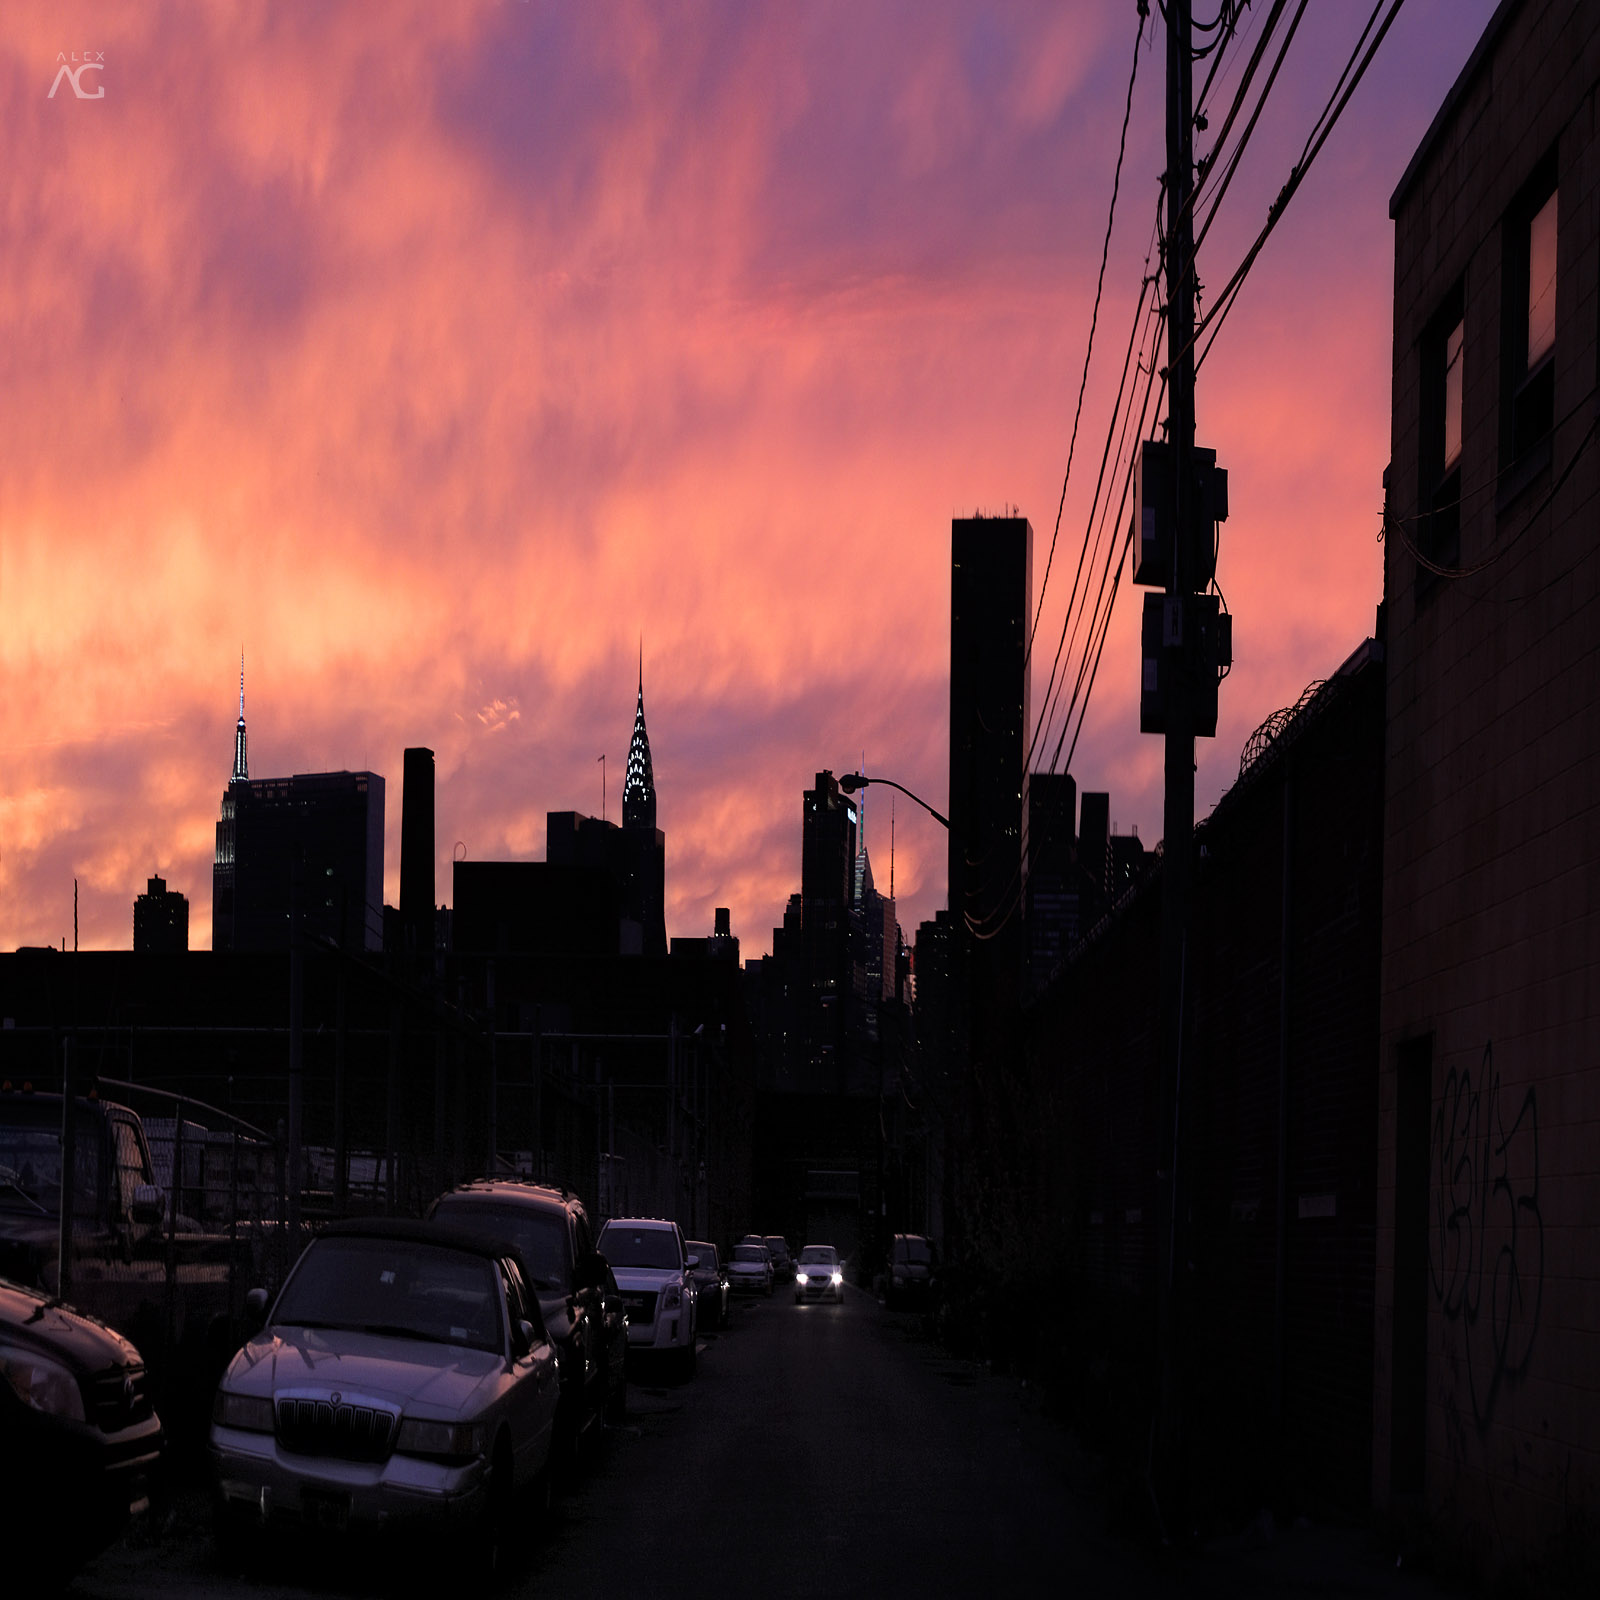 ManhattanRedSunsetOverTheIndustrialArea_squished_1600